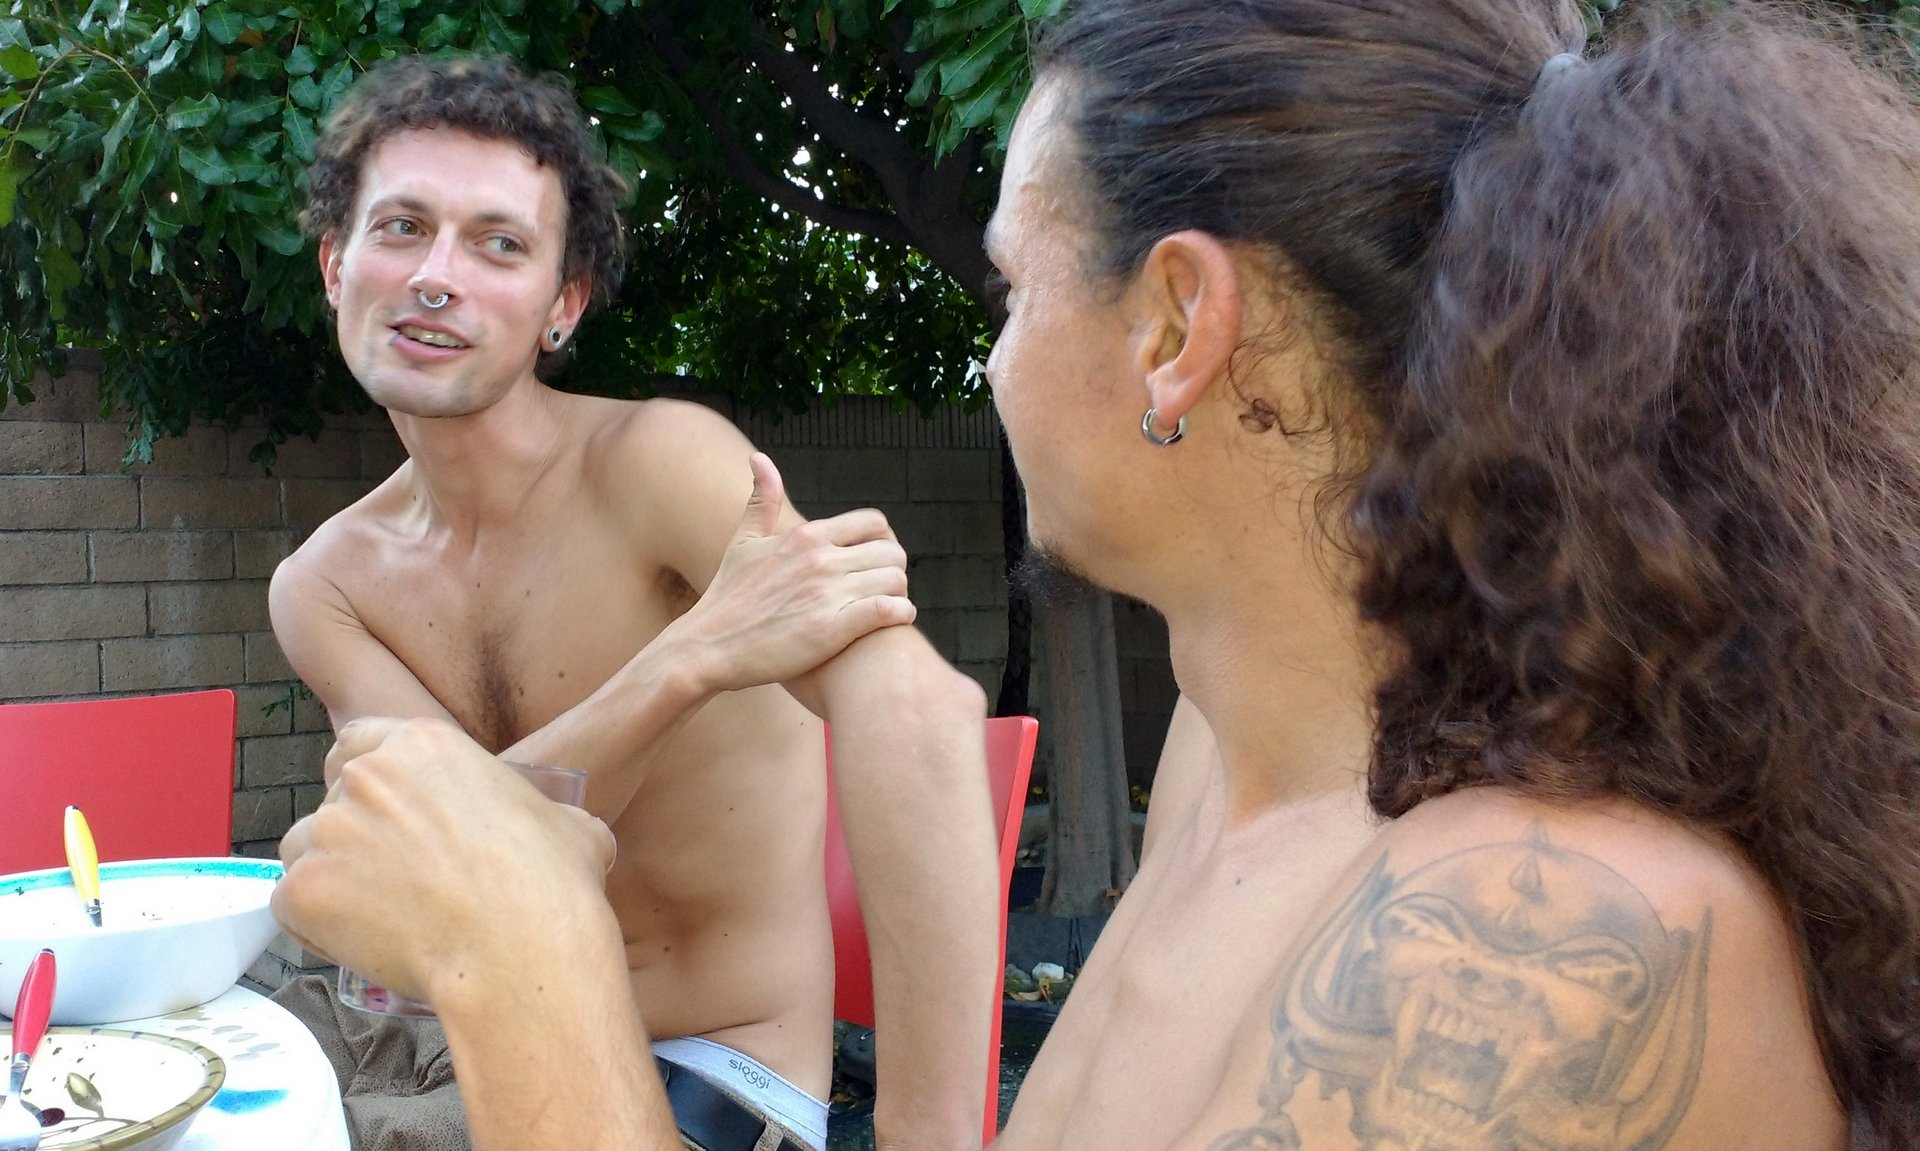 Two people, guys without shirts, sit at an outdoor table and eat a casual meal